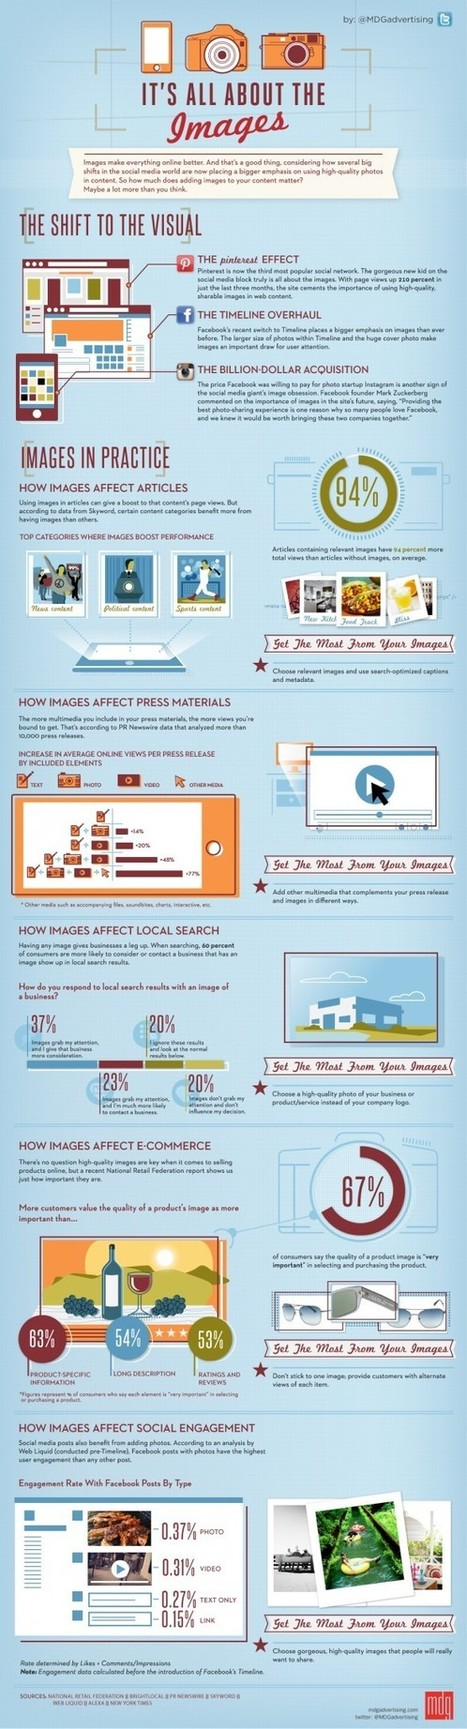 How to Tap Into The Marketing Power of the Visual Social Web - Infographic | CreativosRD. www.creativosrd.com | Scoop.it